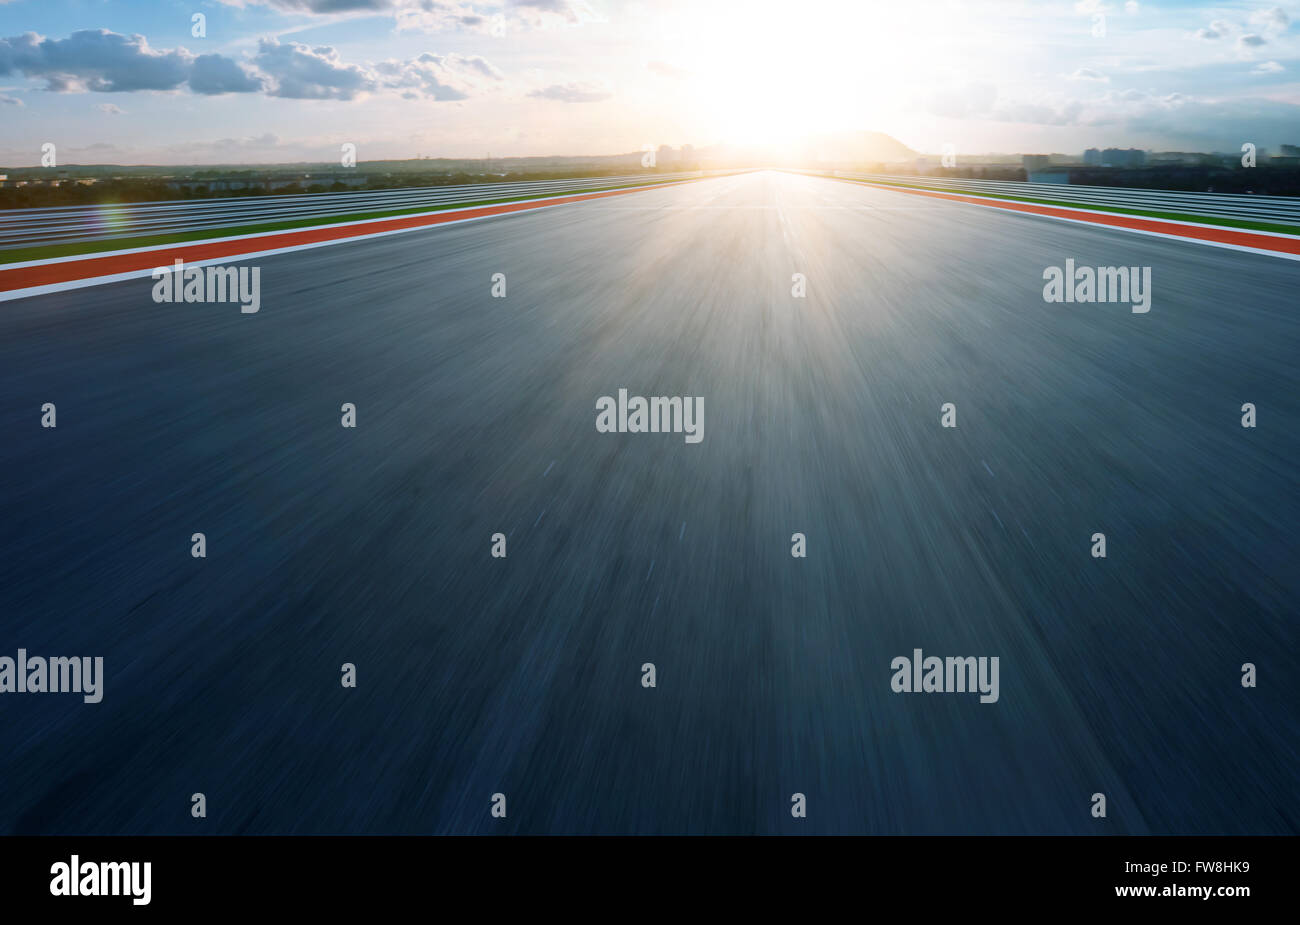 Motion blurred racetrack,morning - Stock Image